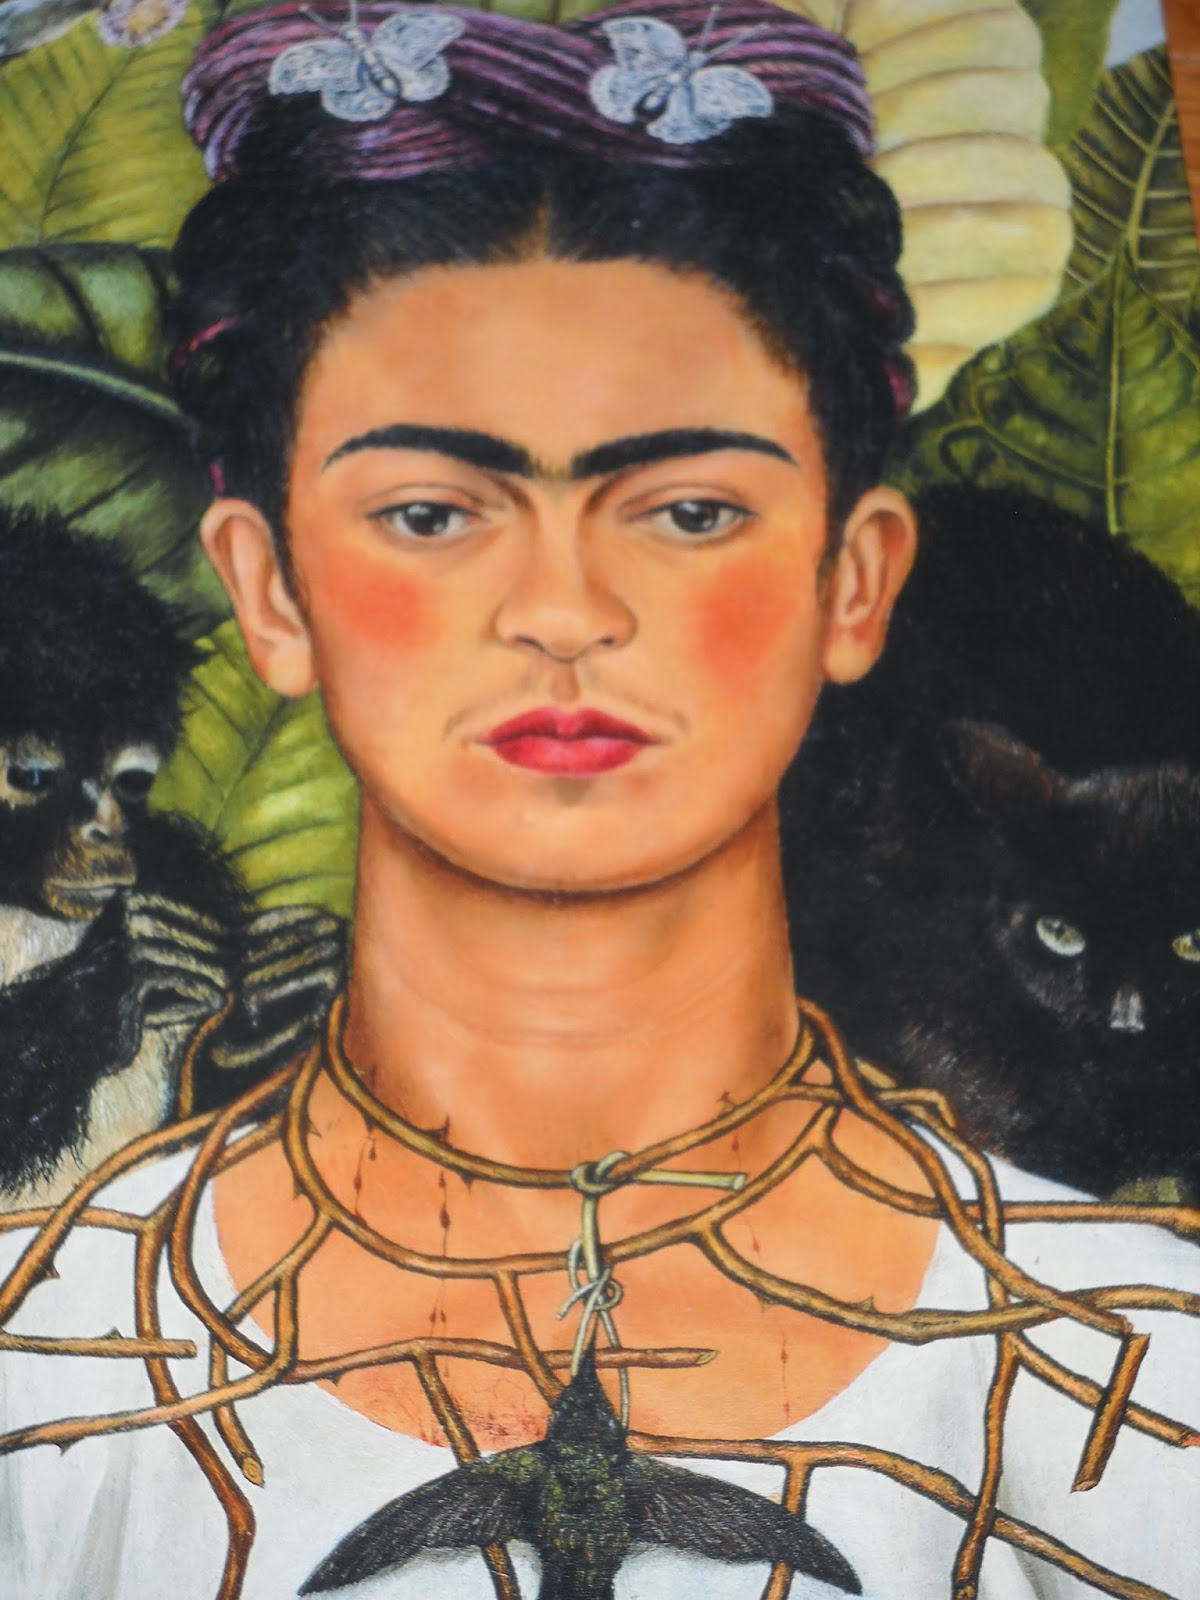 frida kahlo biography essay The tools you need to write a quality essay or this is a biography on frida kahlo's life and the all over the world people loved frida frida kahlo.